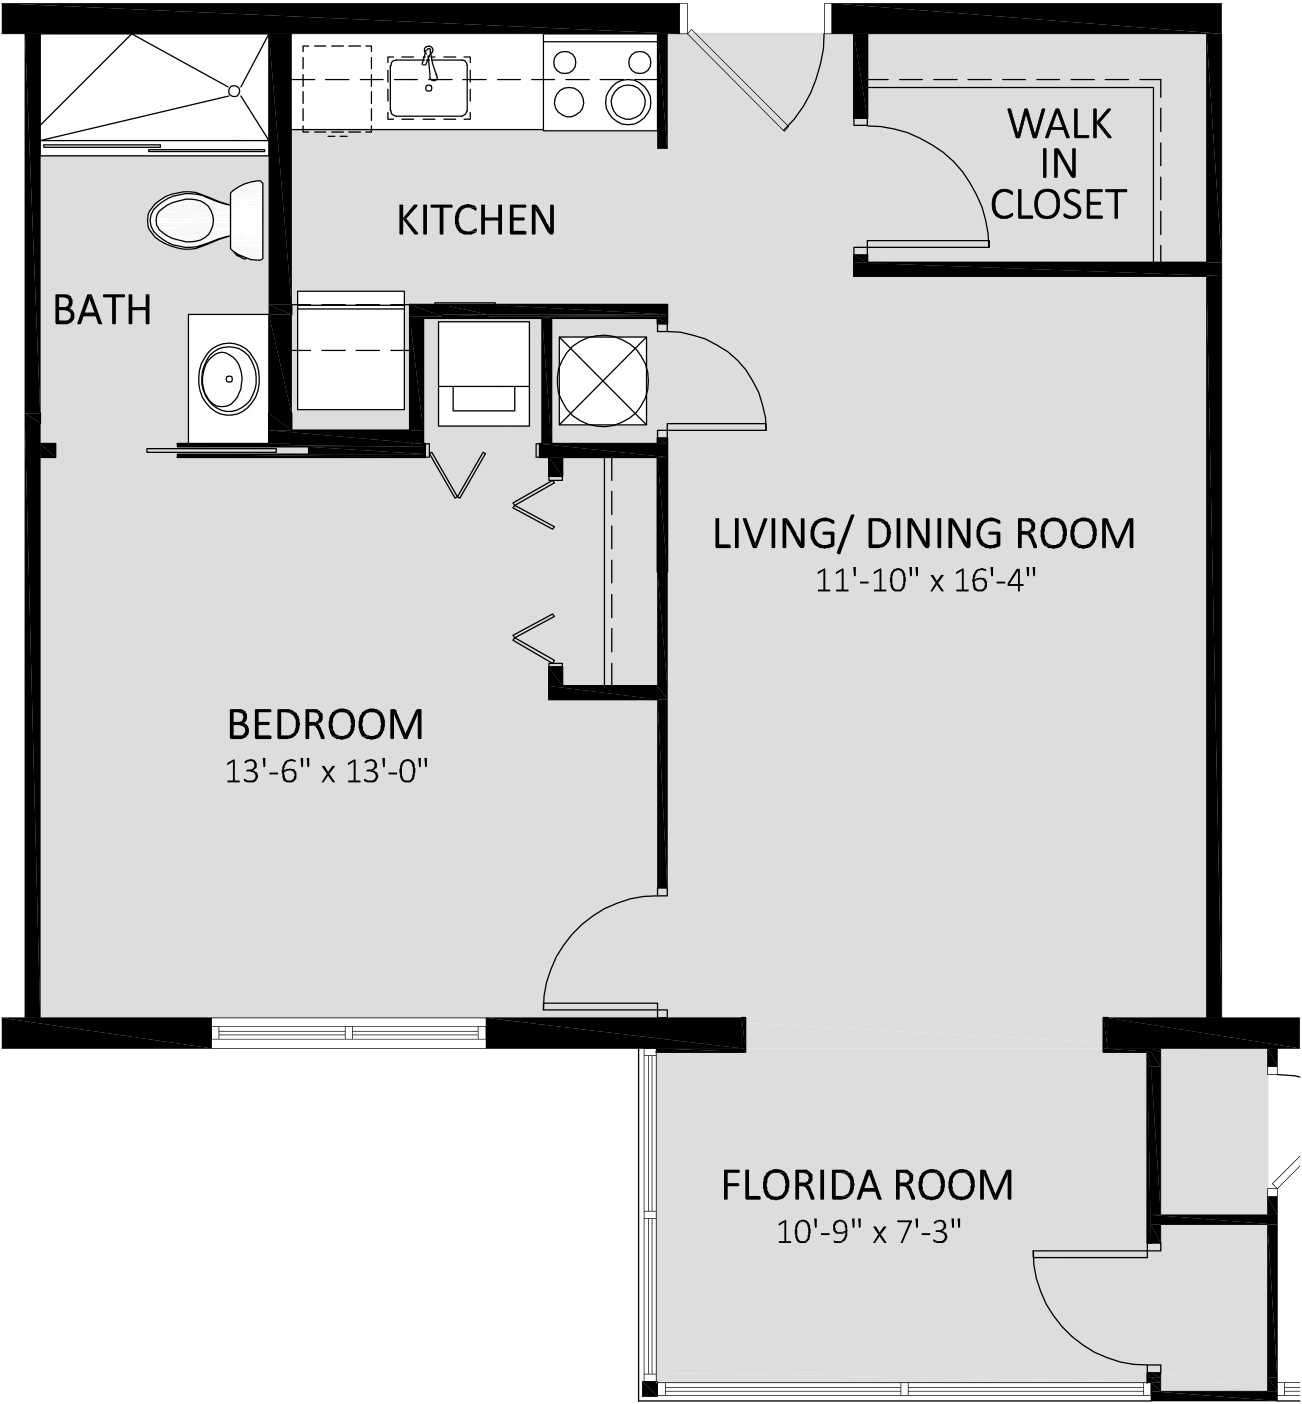 SAE Coral Reef Traditional One Bedroom 641 Sq Ft.png